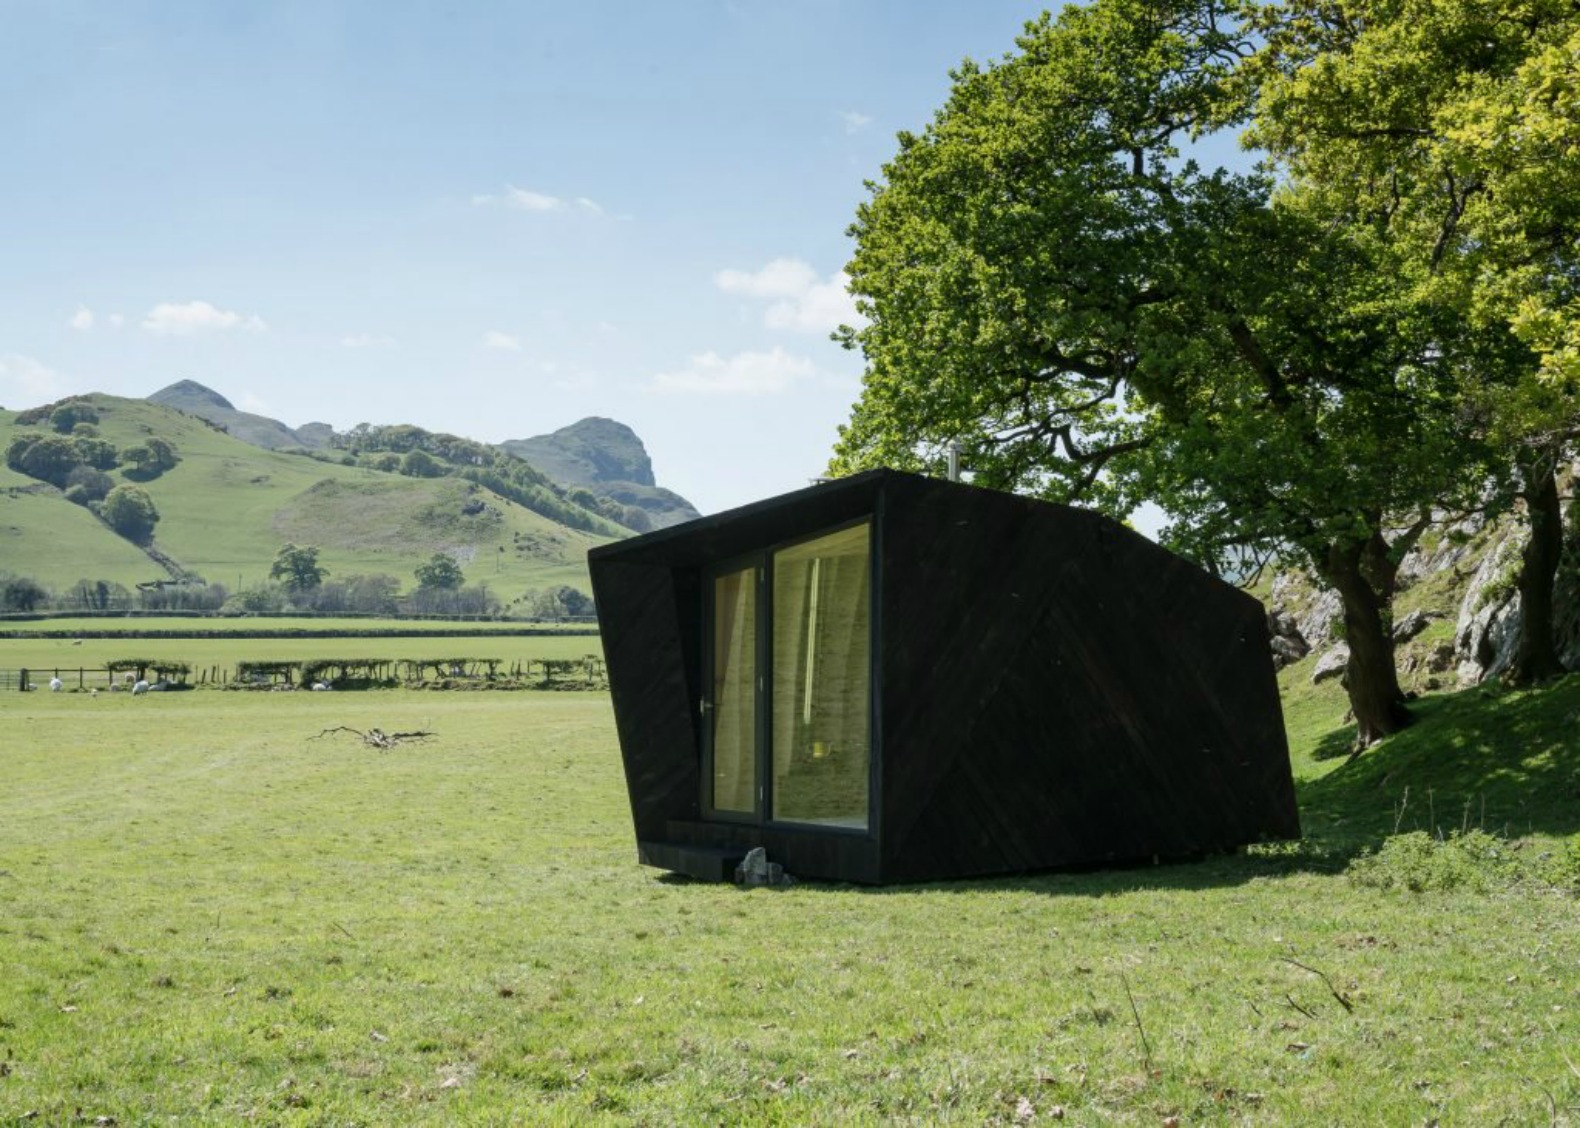 8 tiny folkloreinspired cabins pop up in the Welsh